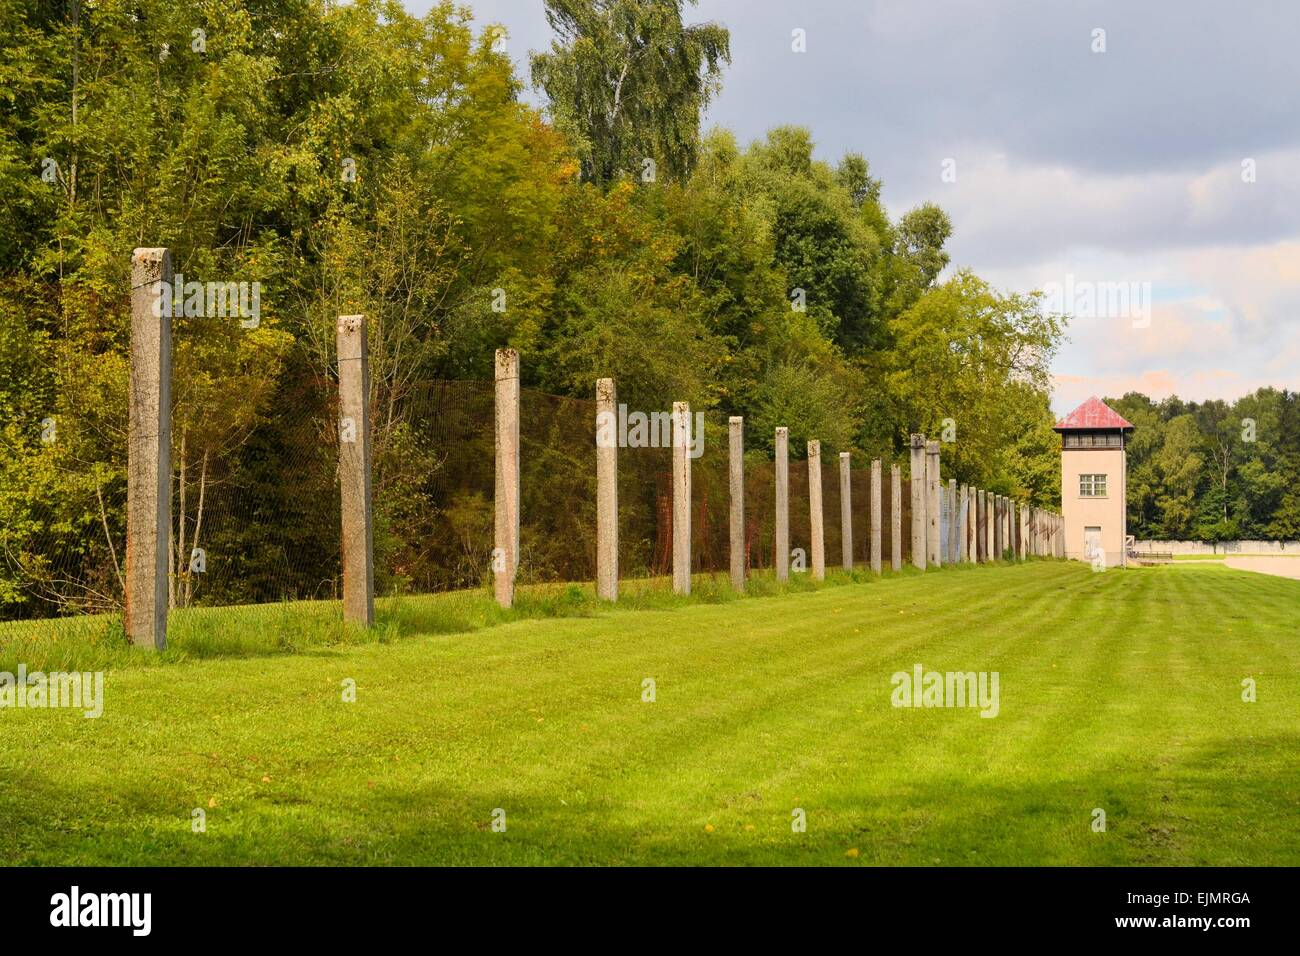 Fence and watch tower at Dachau concentration camp - Stock Image